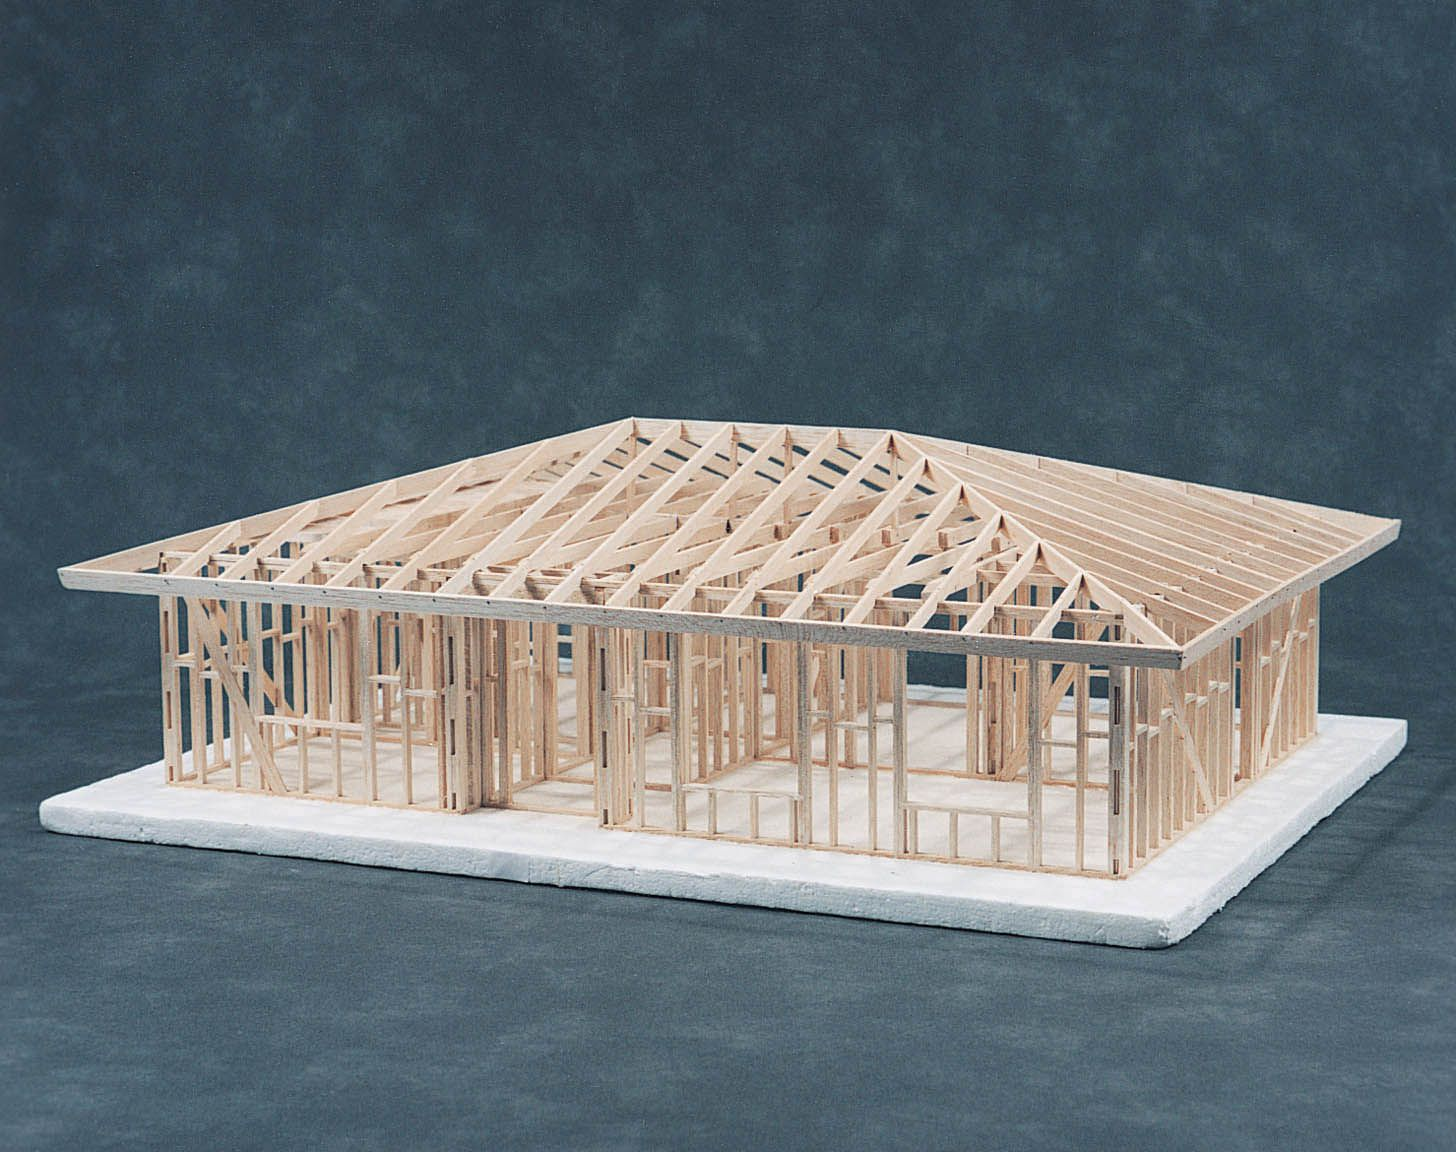 Hip Roof House Framing Kit - Cat# 83-541001C - $169.00 This 3/4 ...